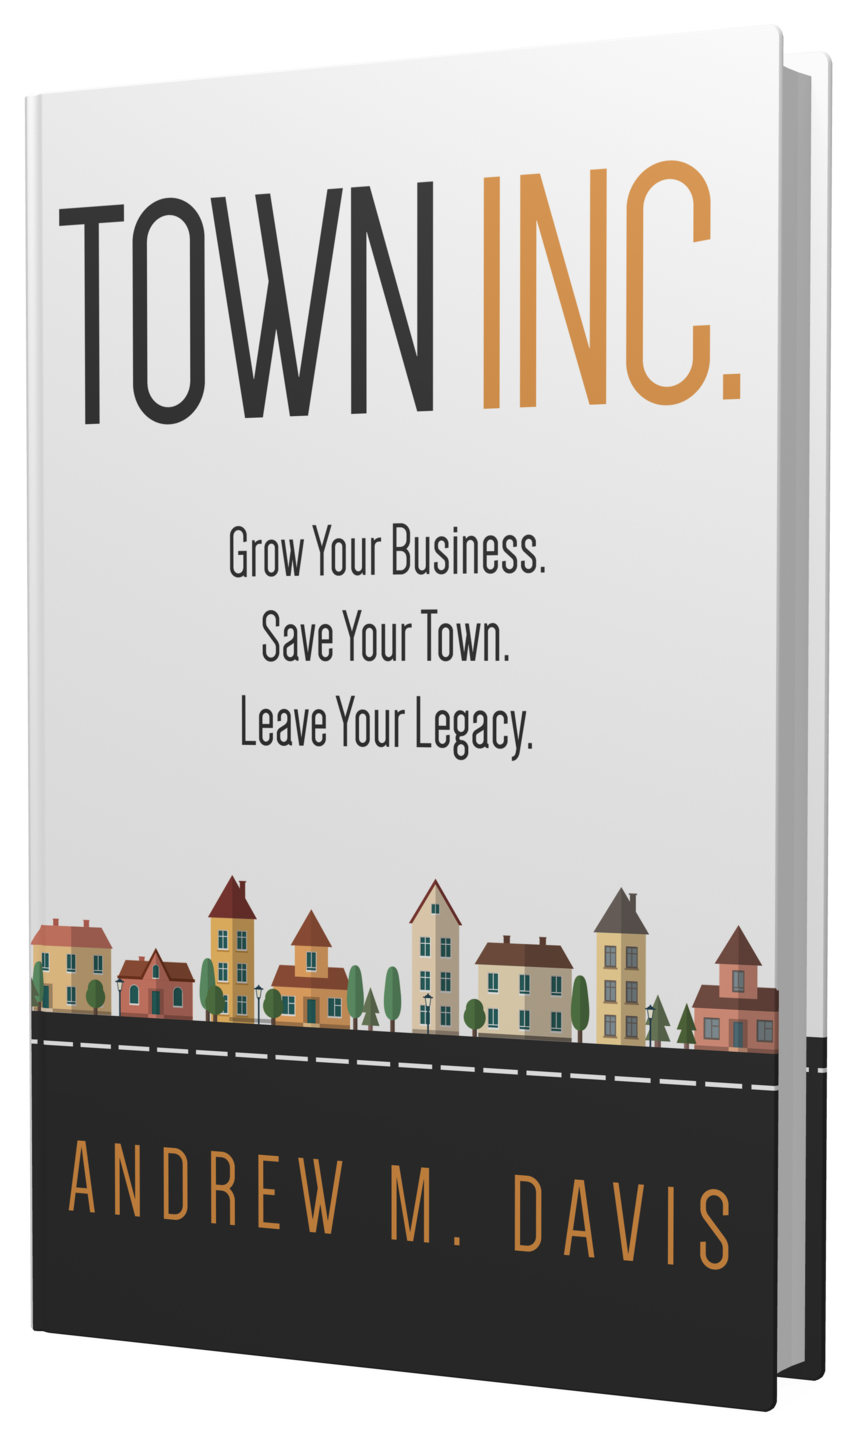 Town Inc. Grow your business. Save your town. Leave Your Legacy